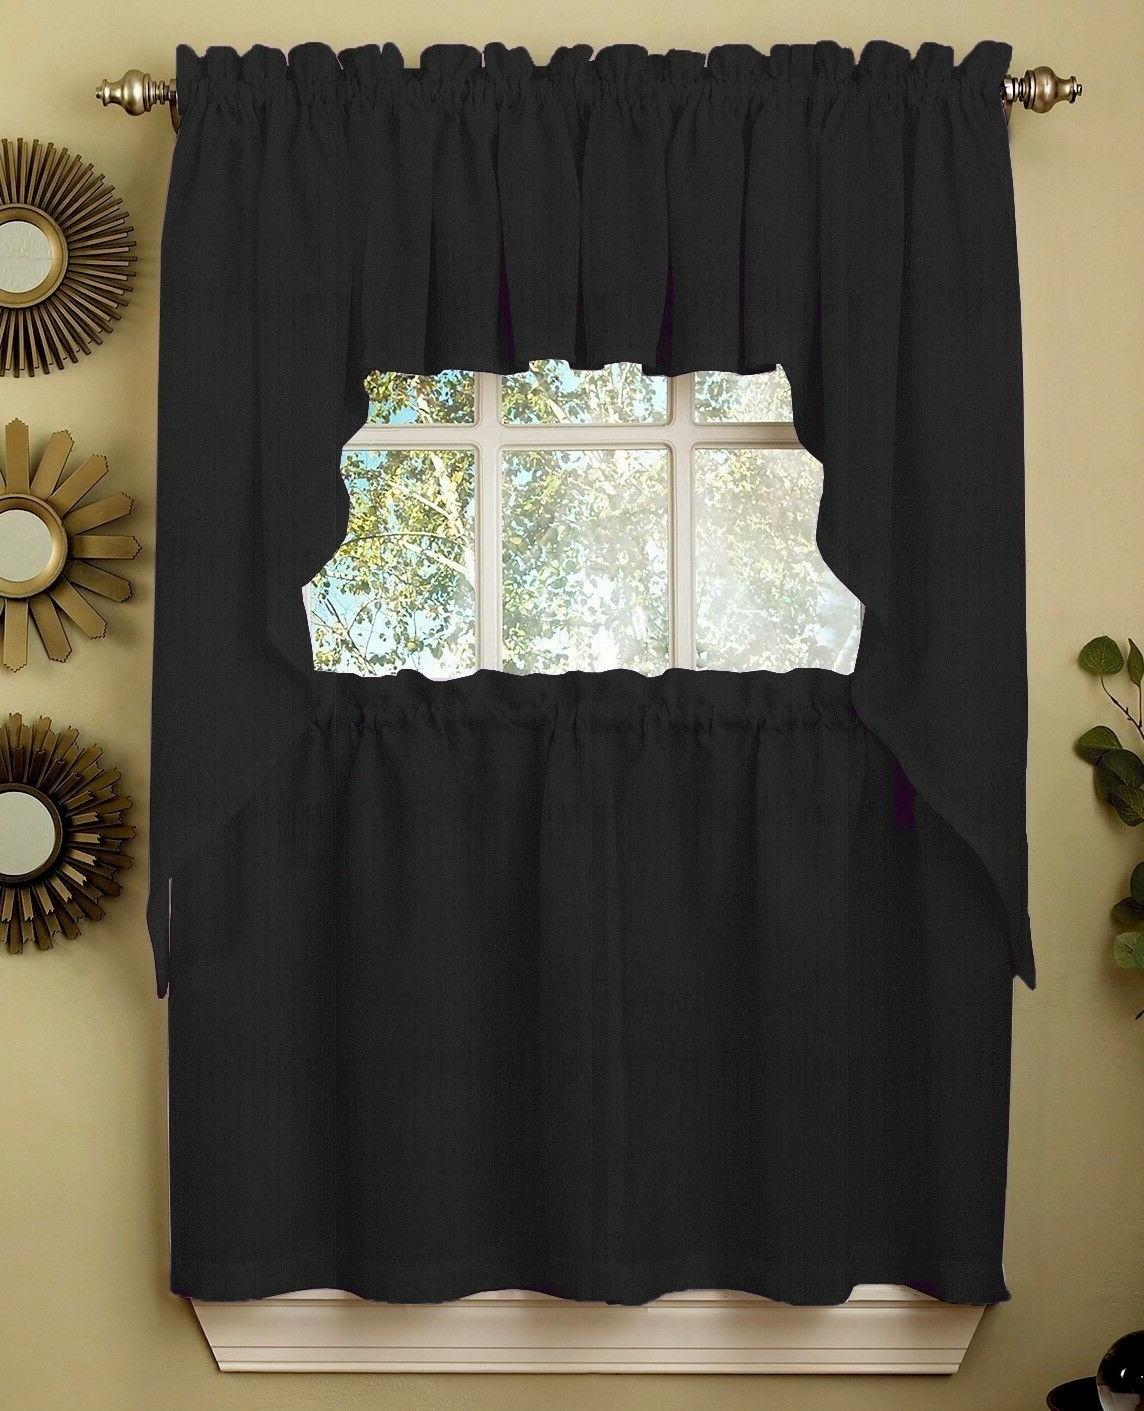 Ribcord Solid Black color Kitchen Curtain - Brand NEW!